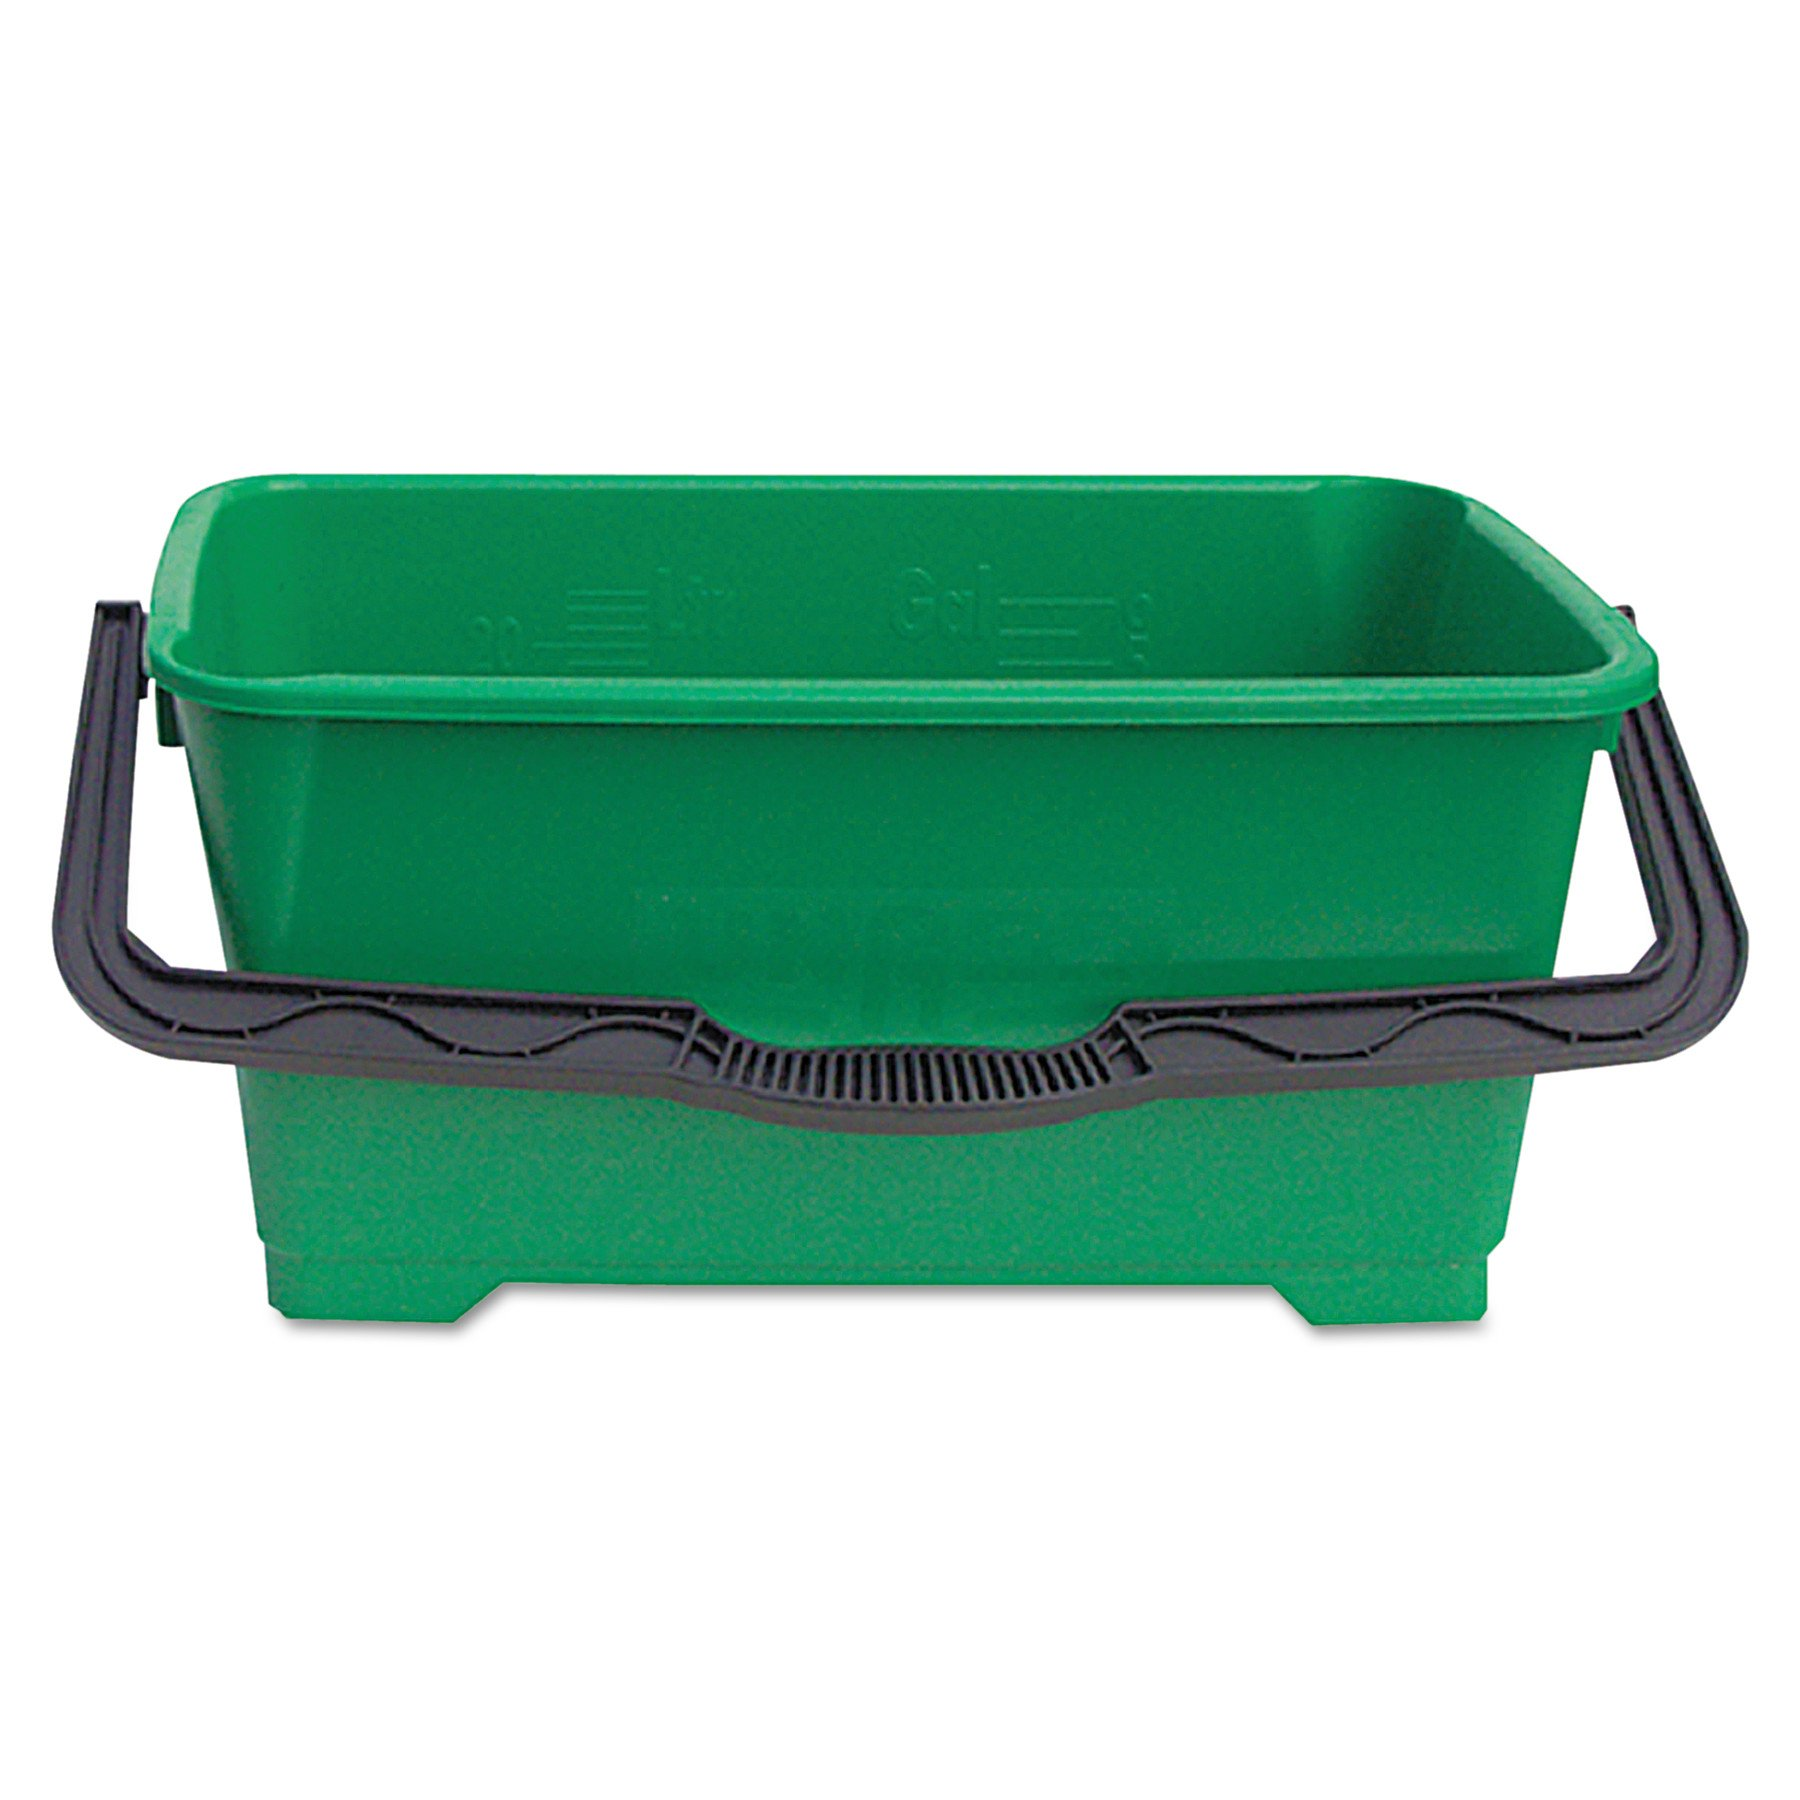 Unger QB220 6 gallon Pro Bucket Fits 18'' Washer, Green with Black Handle